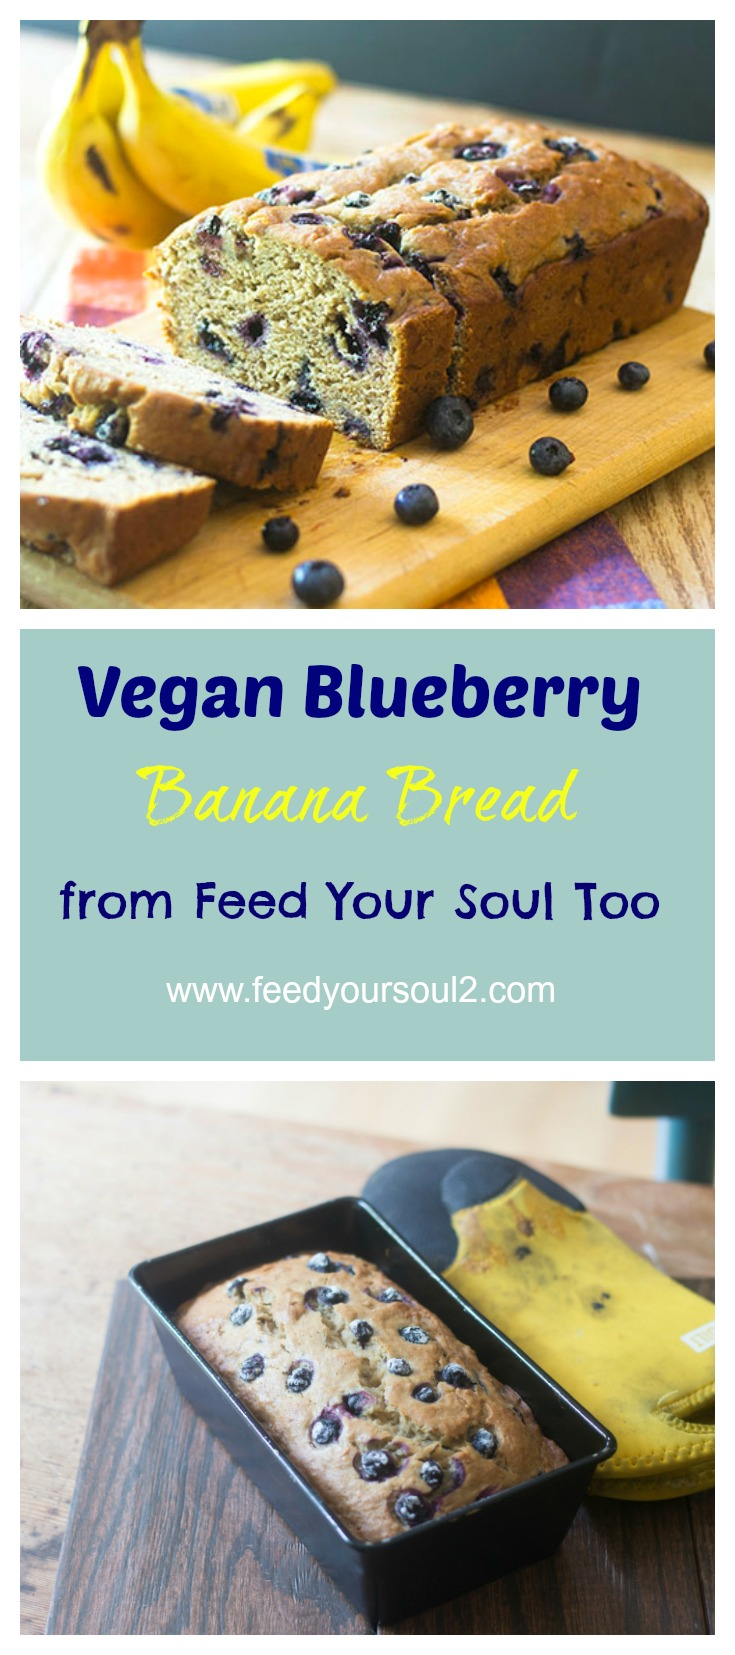 Vegan Blueberry Banana Bread #dessert #bananas #vegan | feedyoursoul2.com